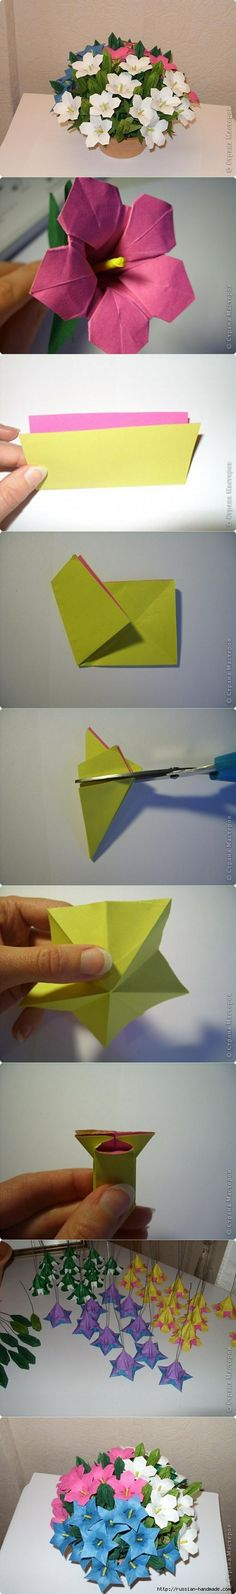 DIY Beautiful Paper Origami